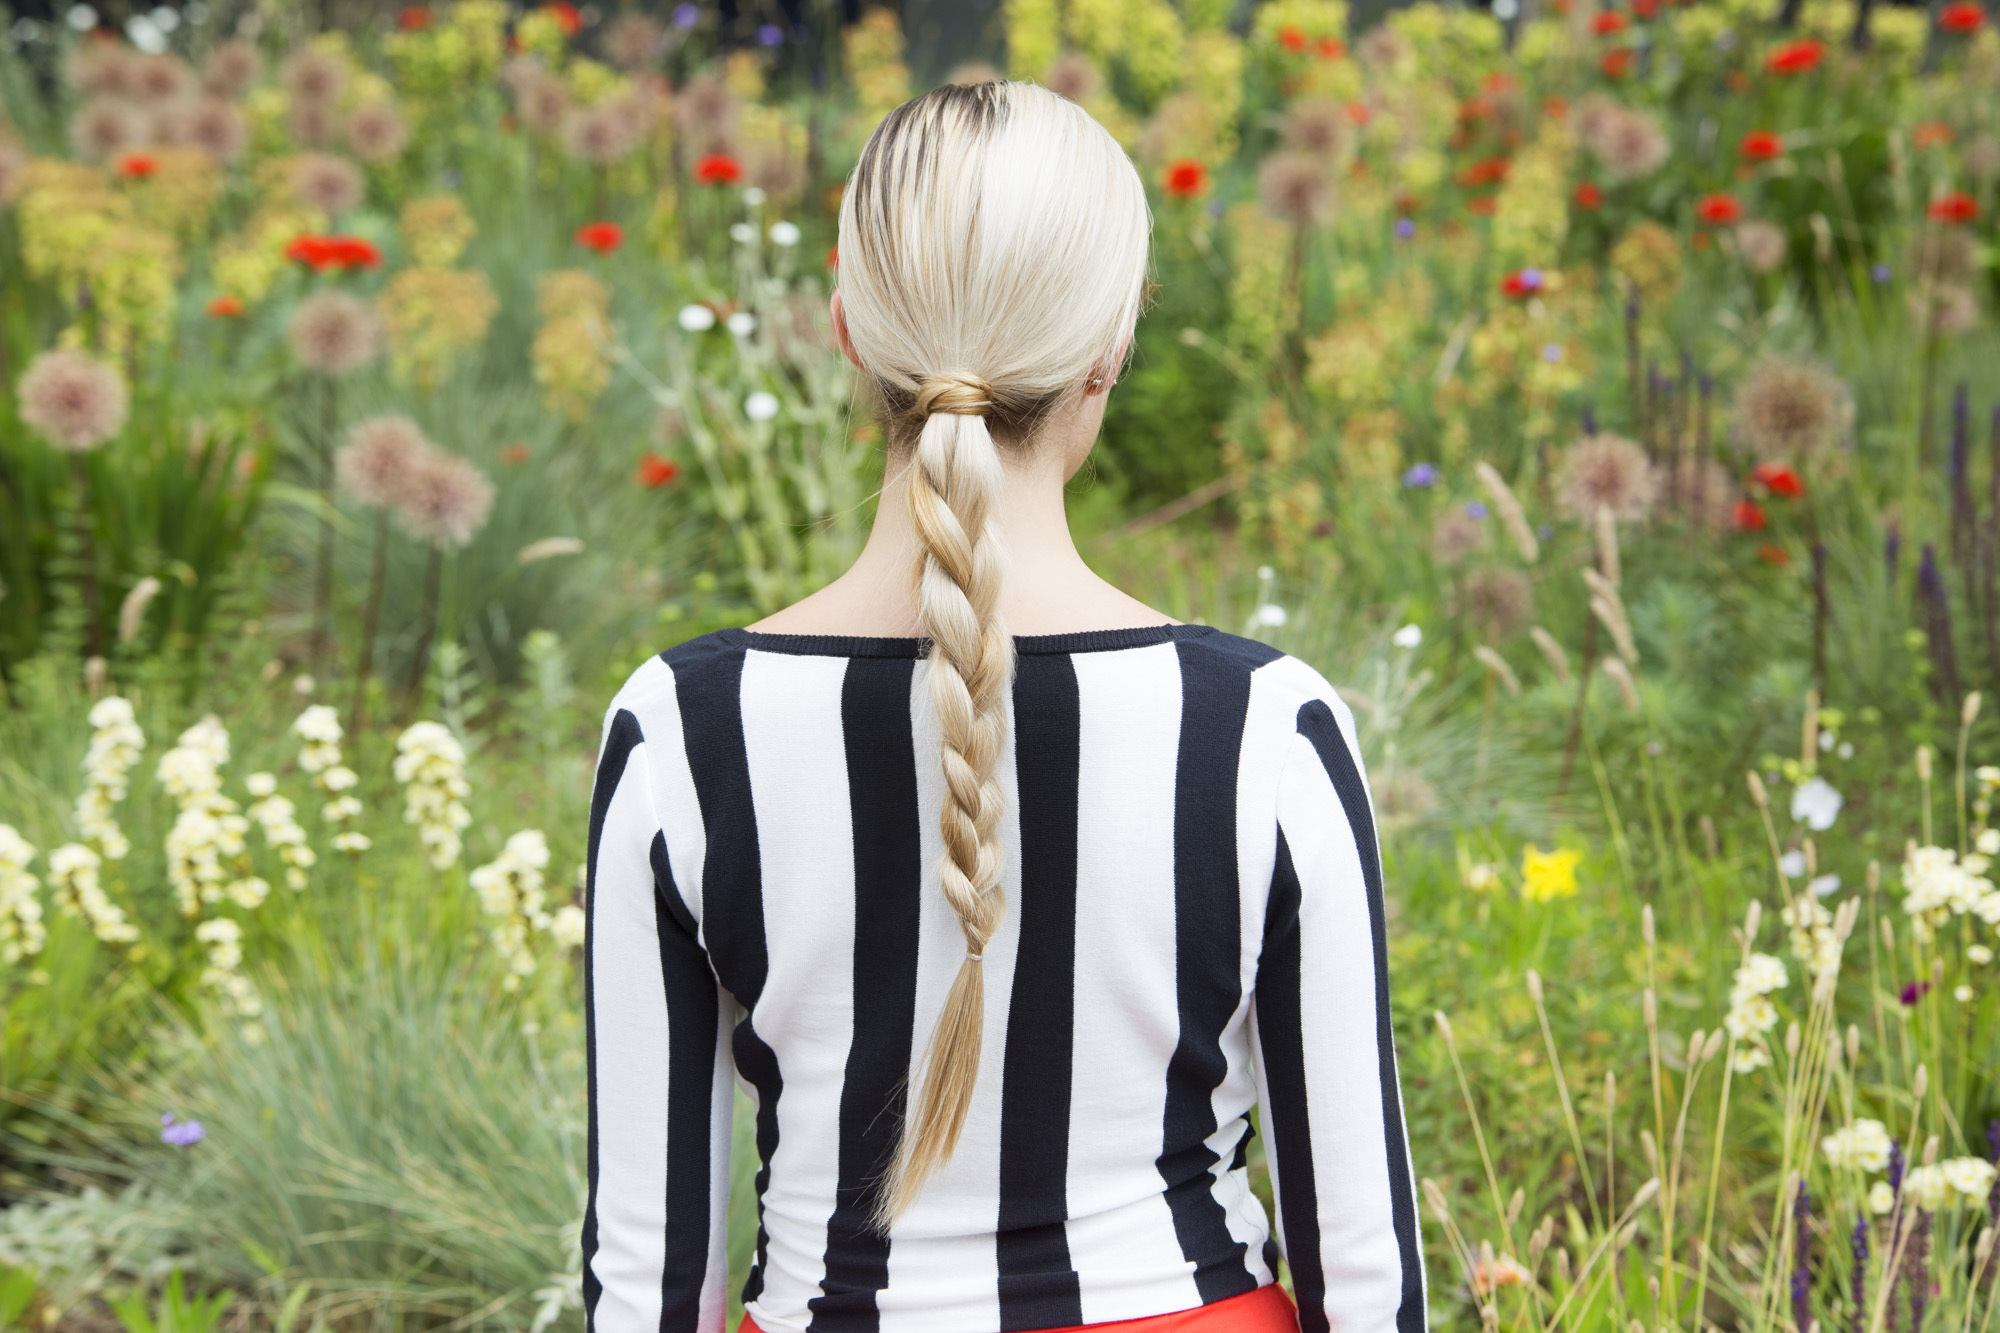 blonde model wearing a black and white striped top with her hair in a low braided ponytail